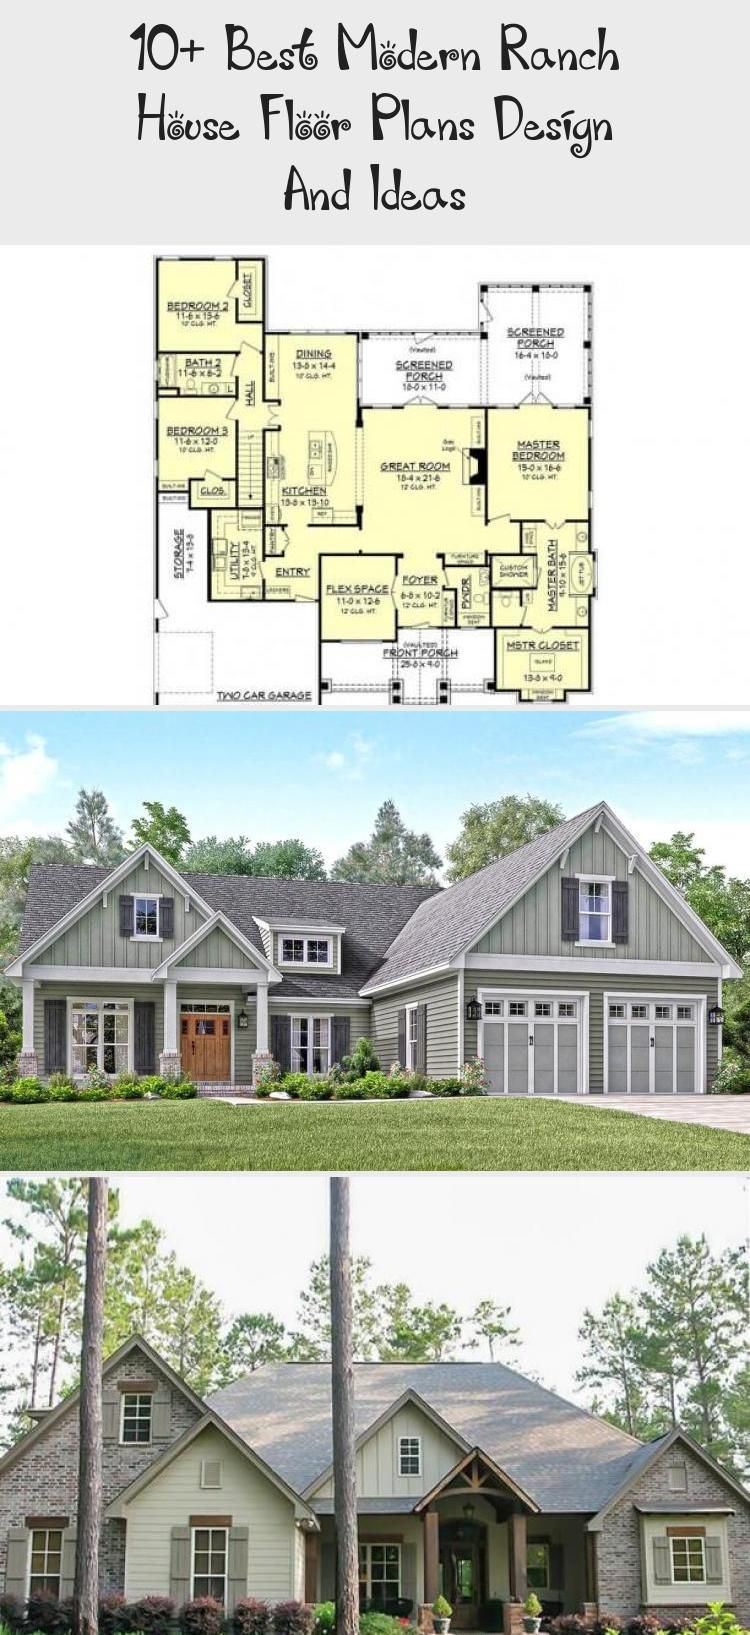 Looking For Ranch House Floor Plans House Plans I Recommend This Site Best Floor House Plans In 2020 Ranch House Floor Plans House Floor Plans Ranch House